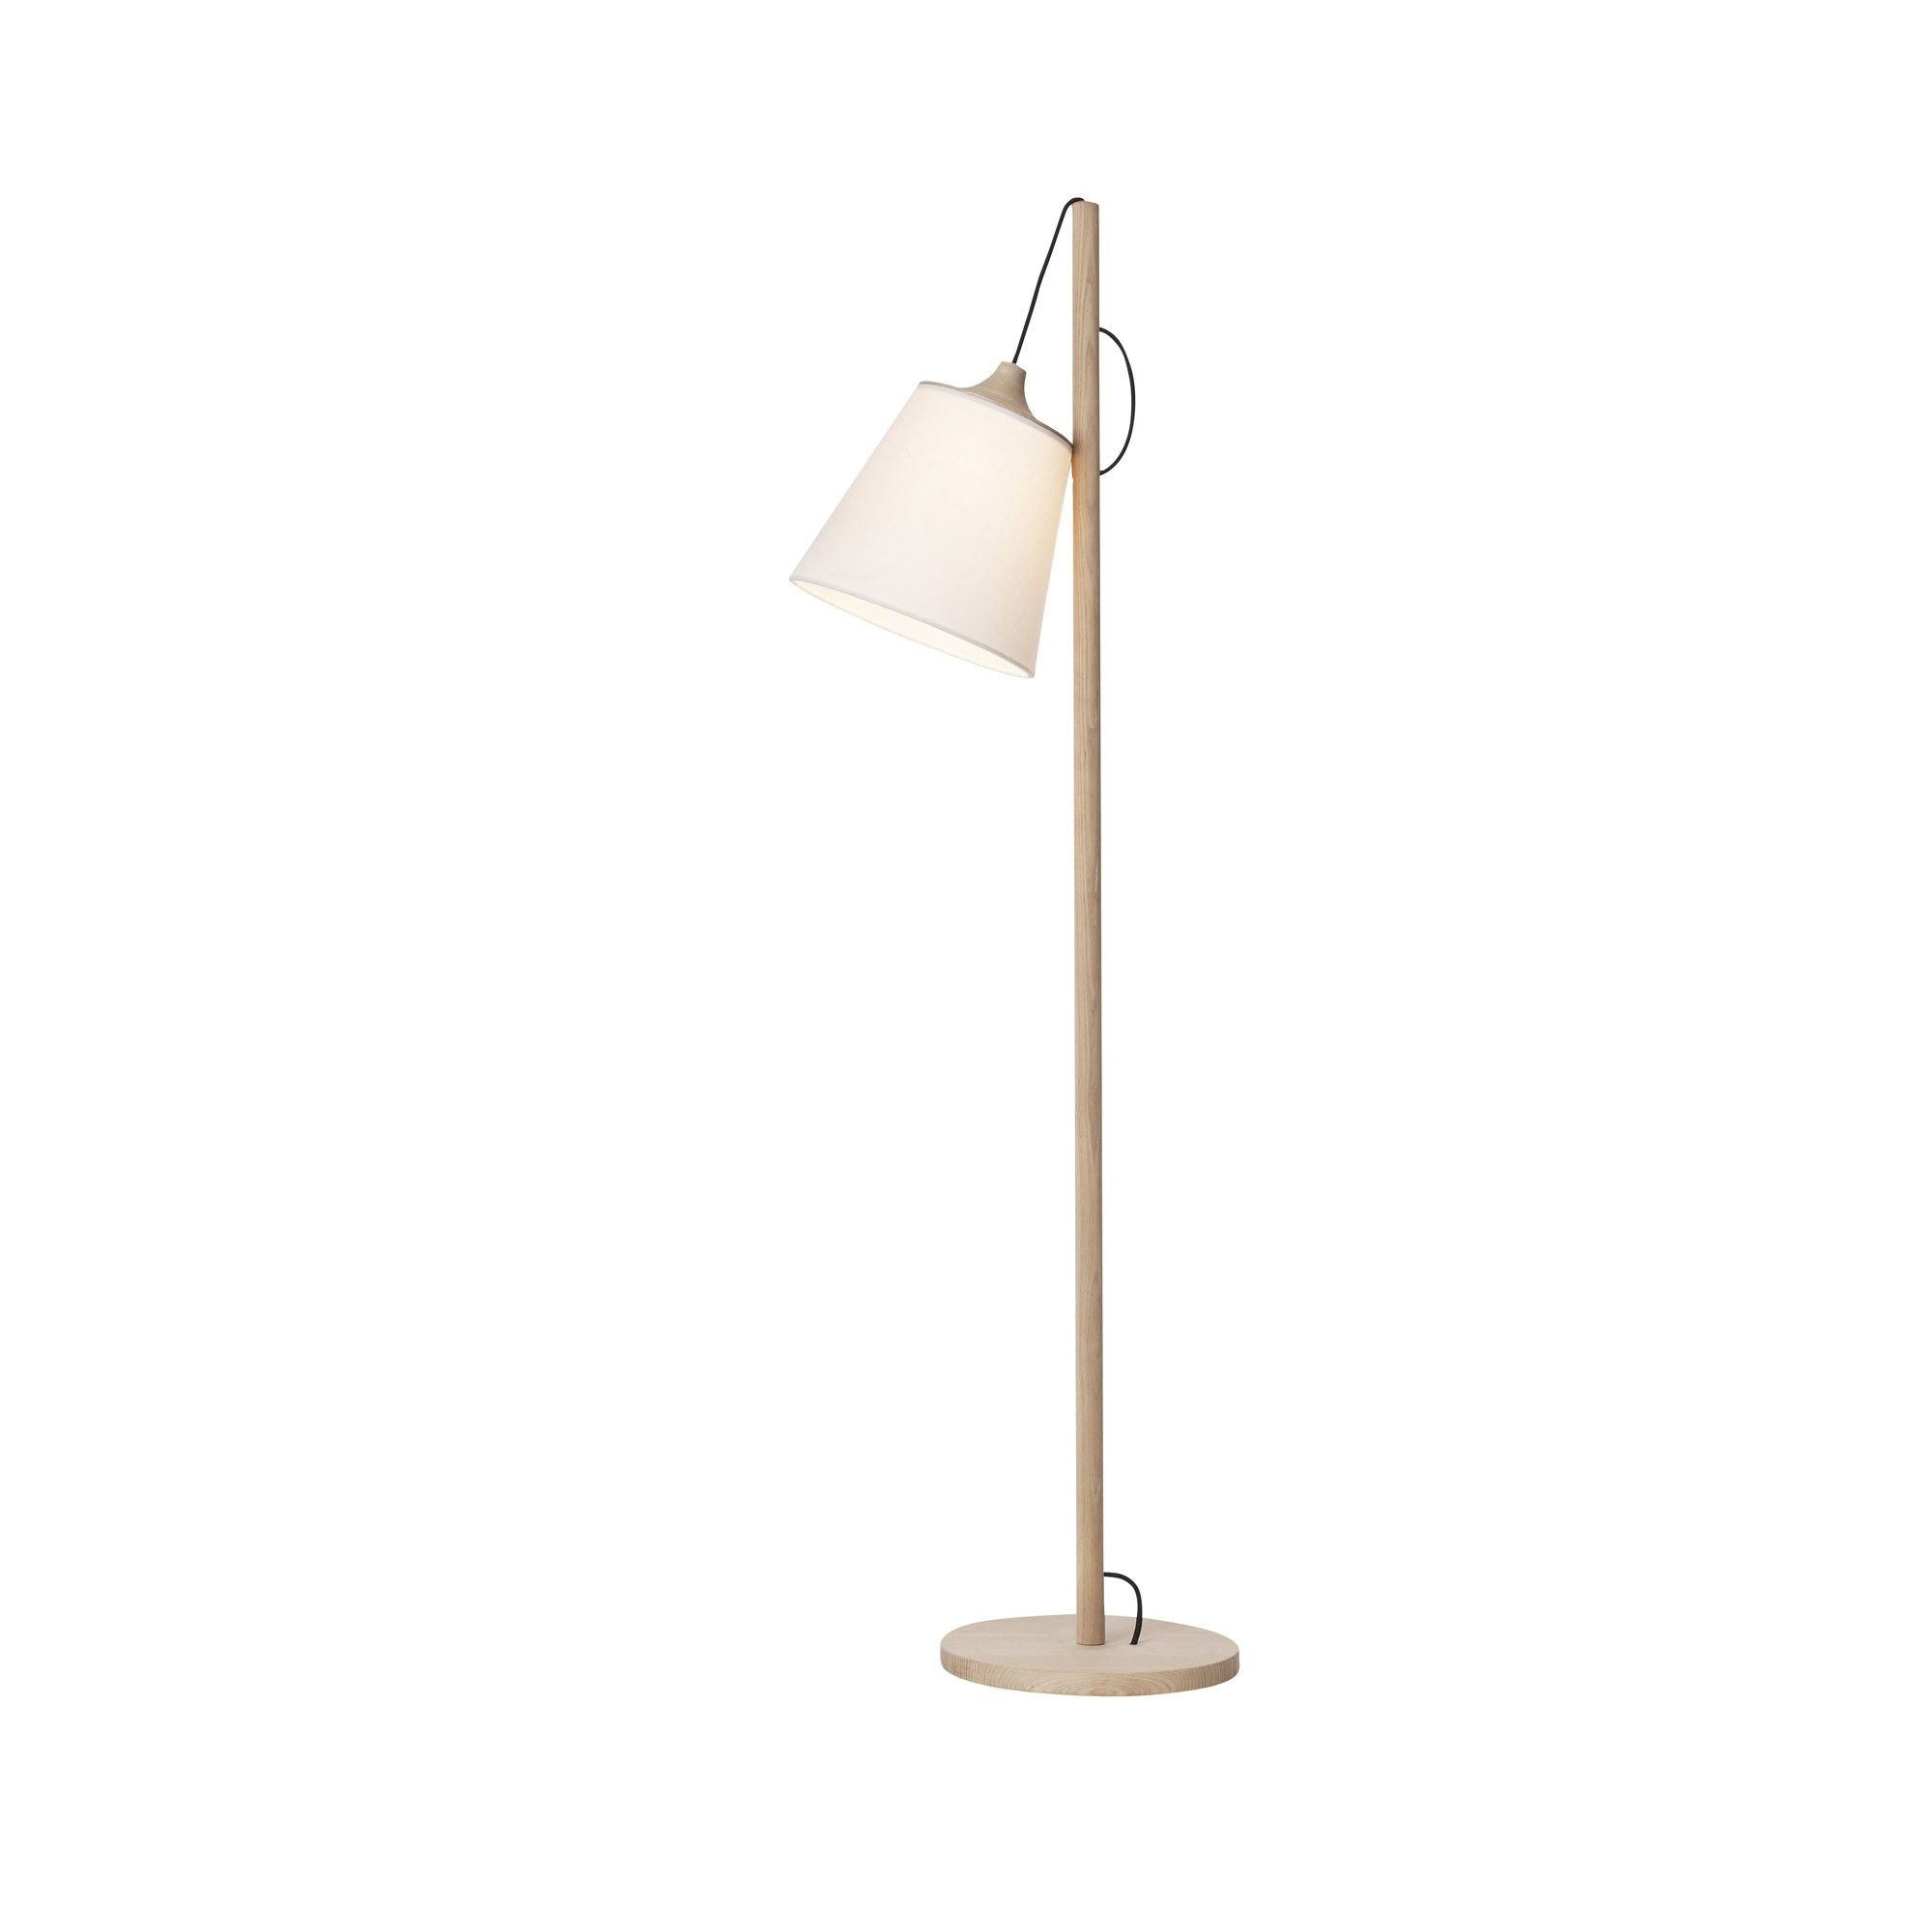 eco lighting supplies. Eco Lighting Supplies. Supplies Pull Floor Lamp  And L